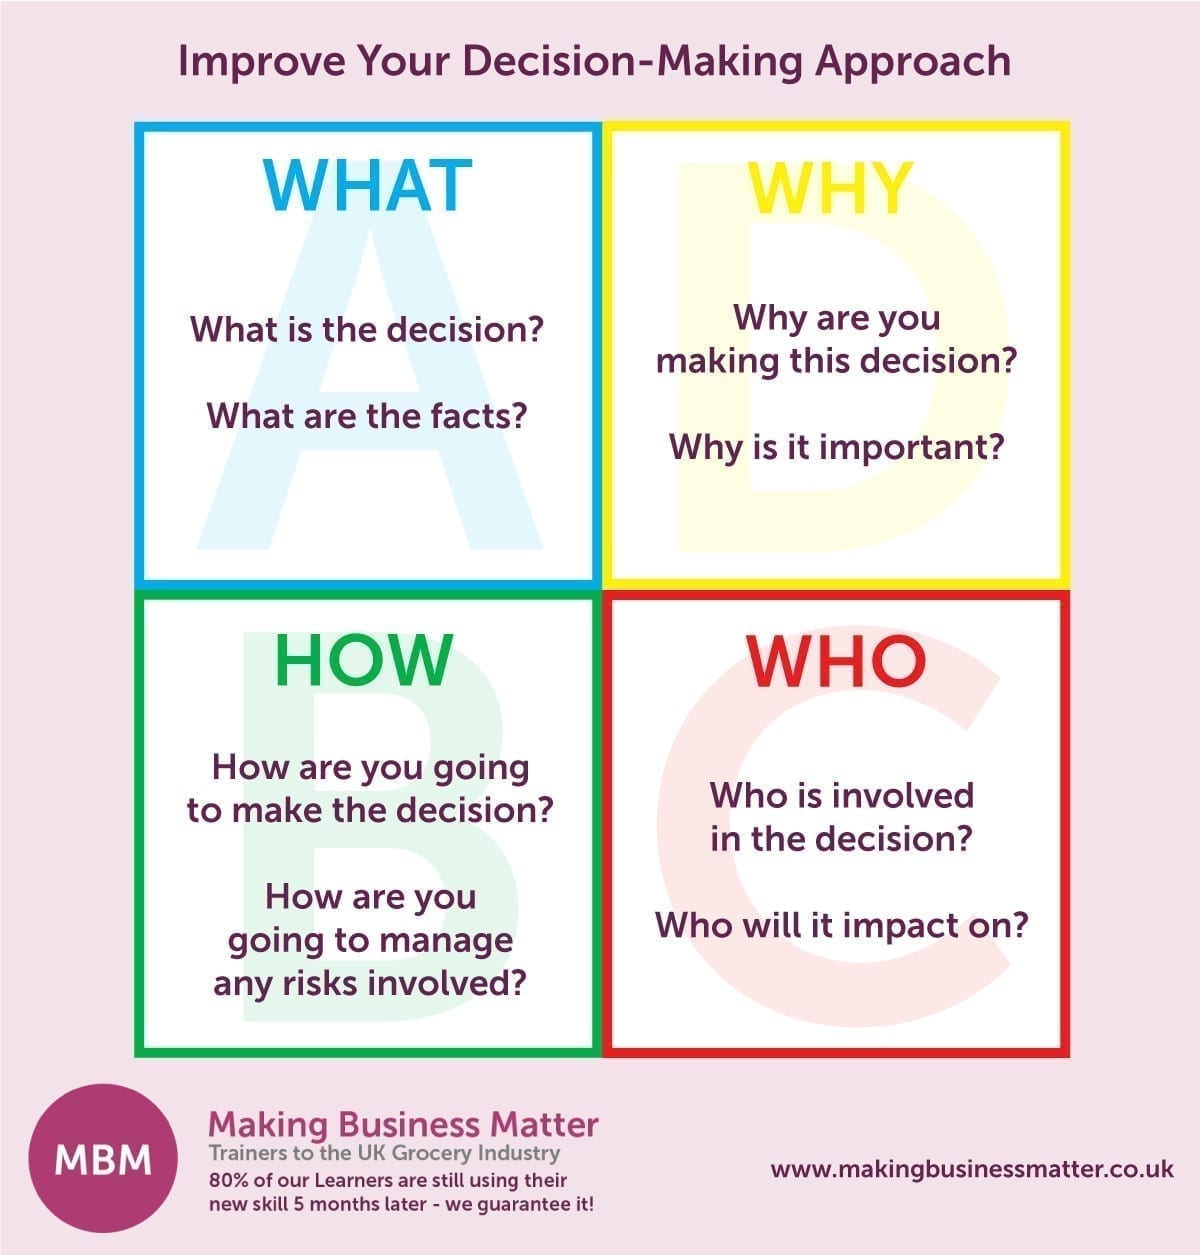 What, How, Who, Why, Improve Your Decision-Making Approach